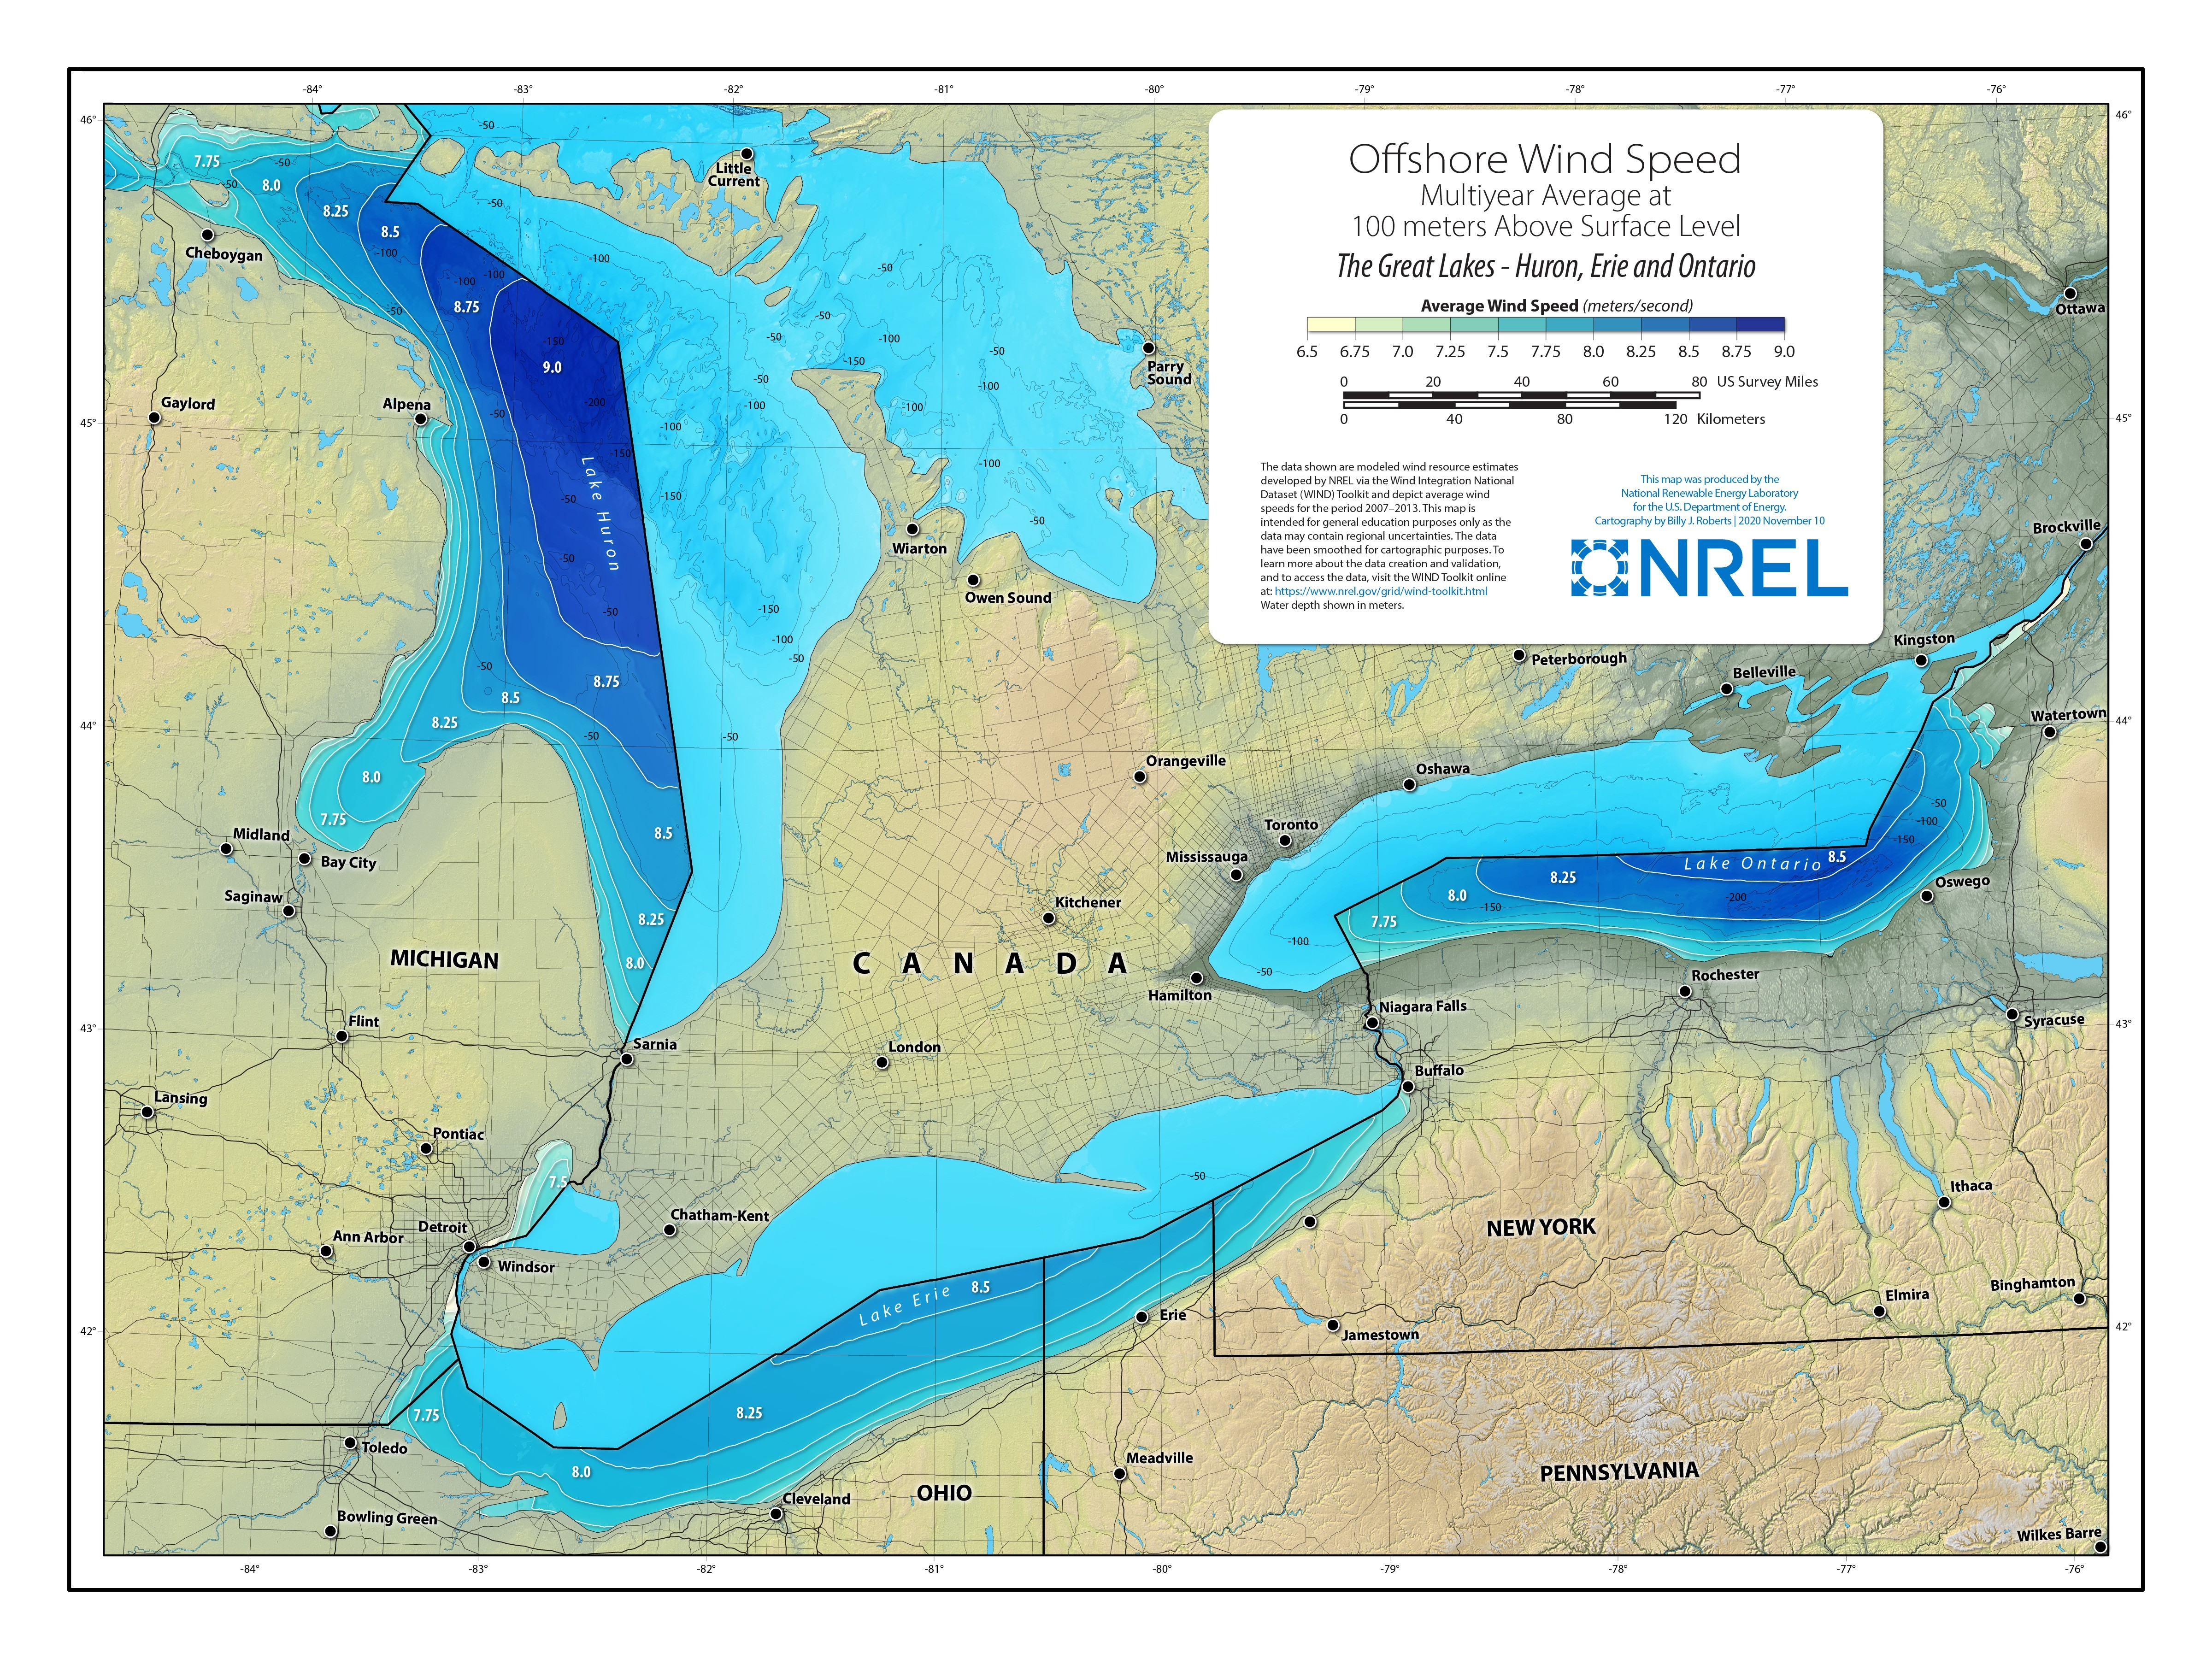 Great Lakes Offshore Wind Speed at 100 Meters | Lakes Huron, Eric, and Ontario